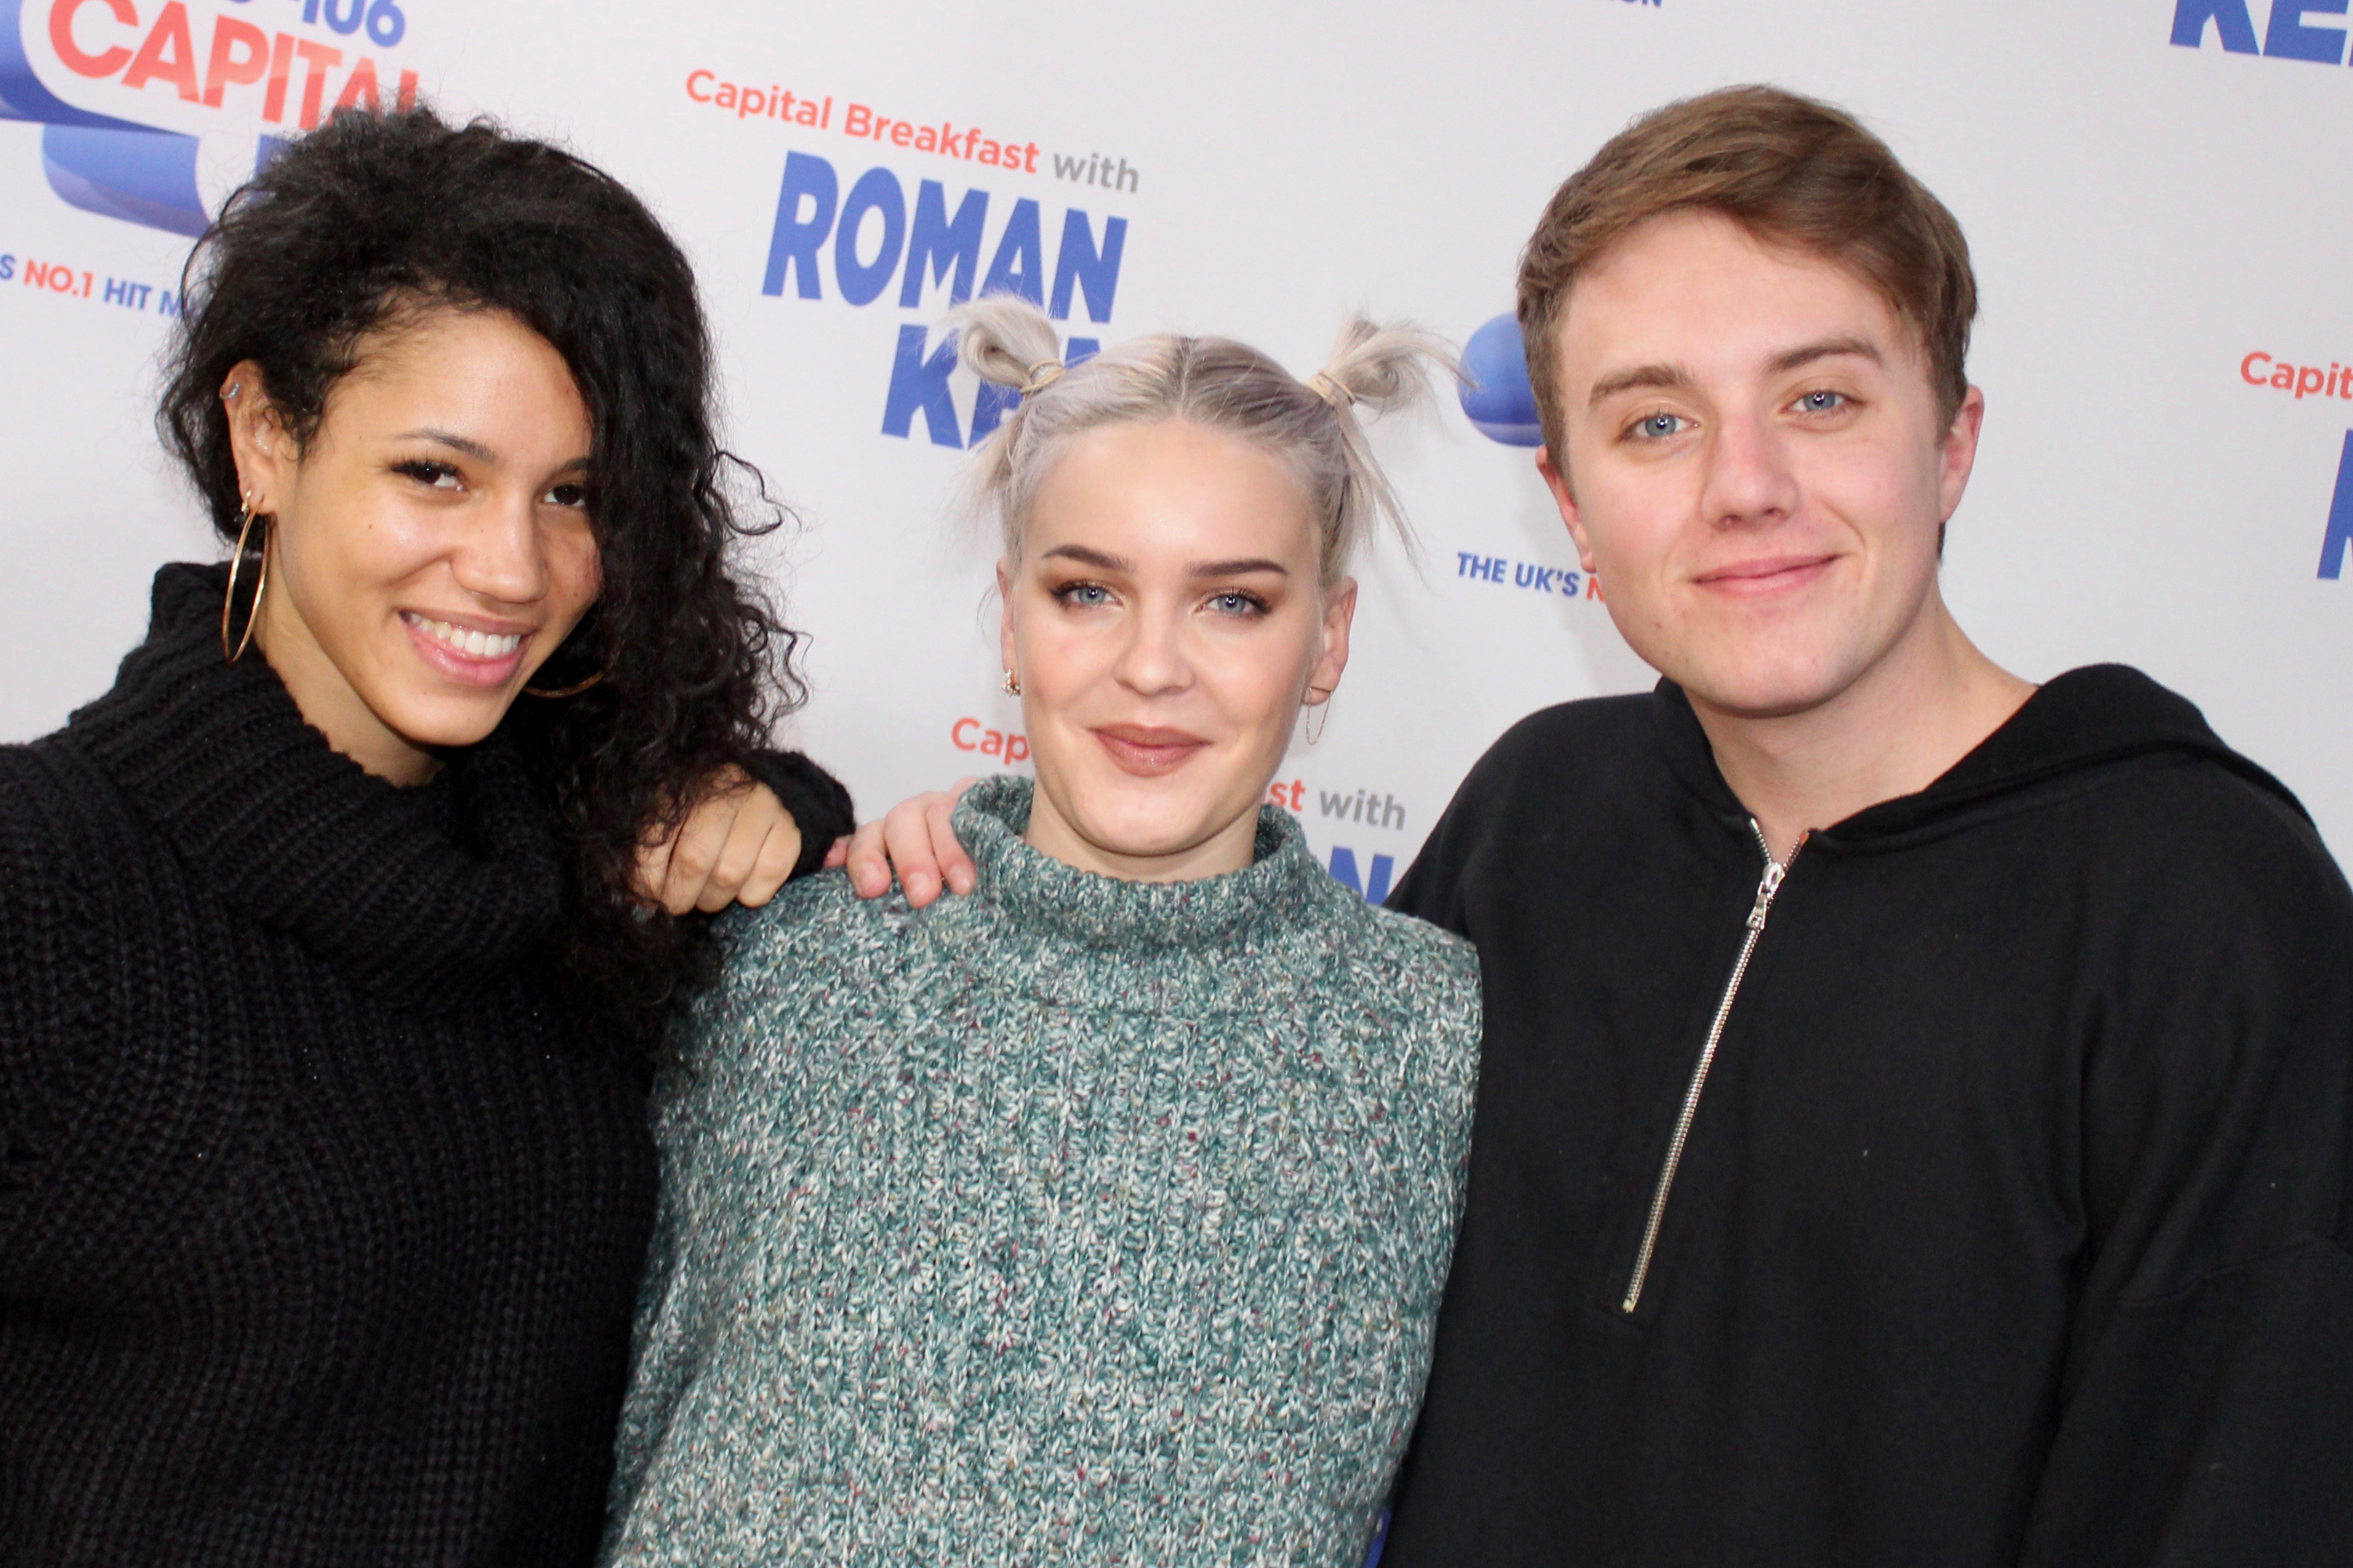 Anne-Marie on Capital Breakfast w/ Roman Kemp